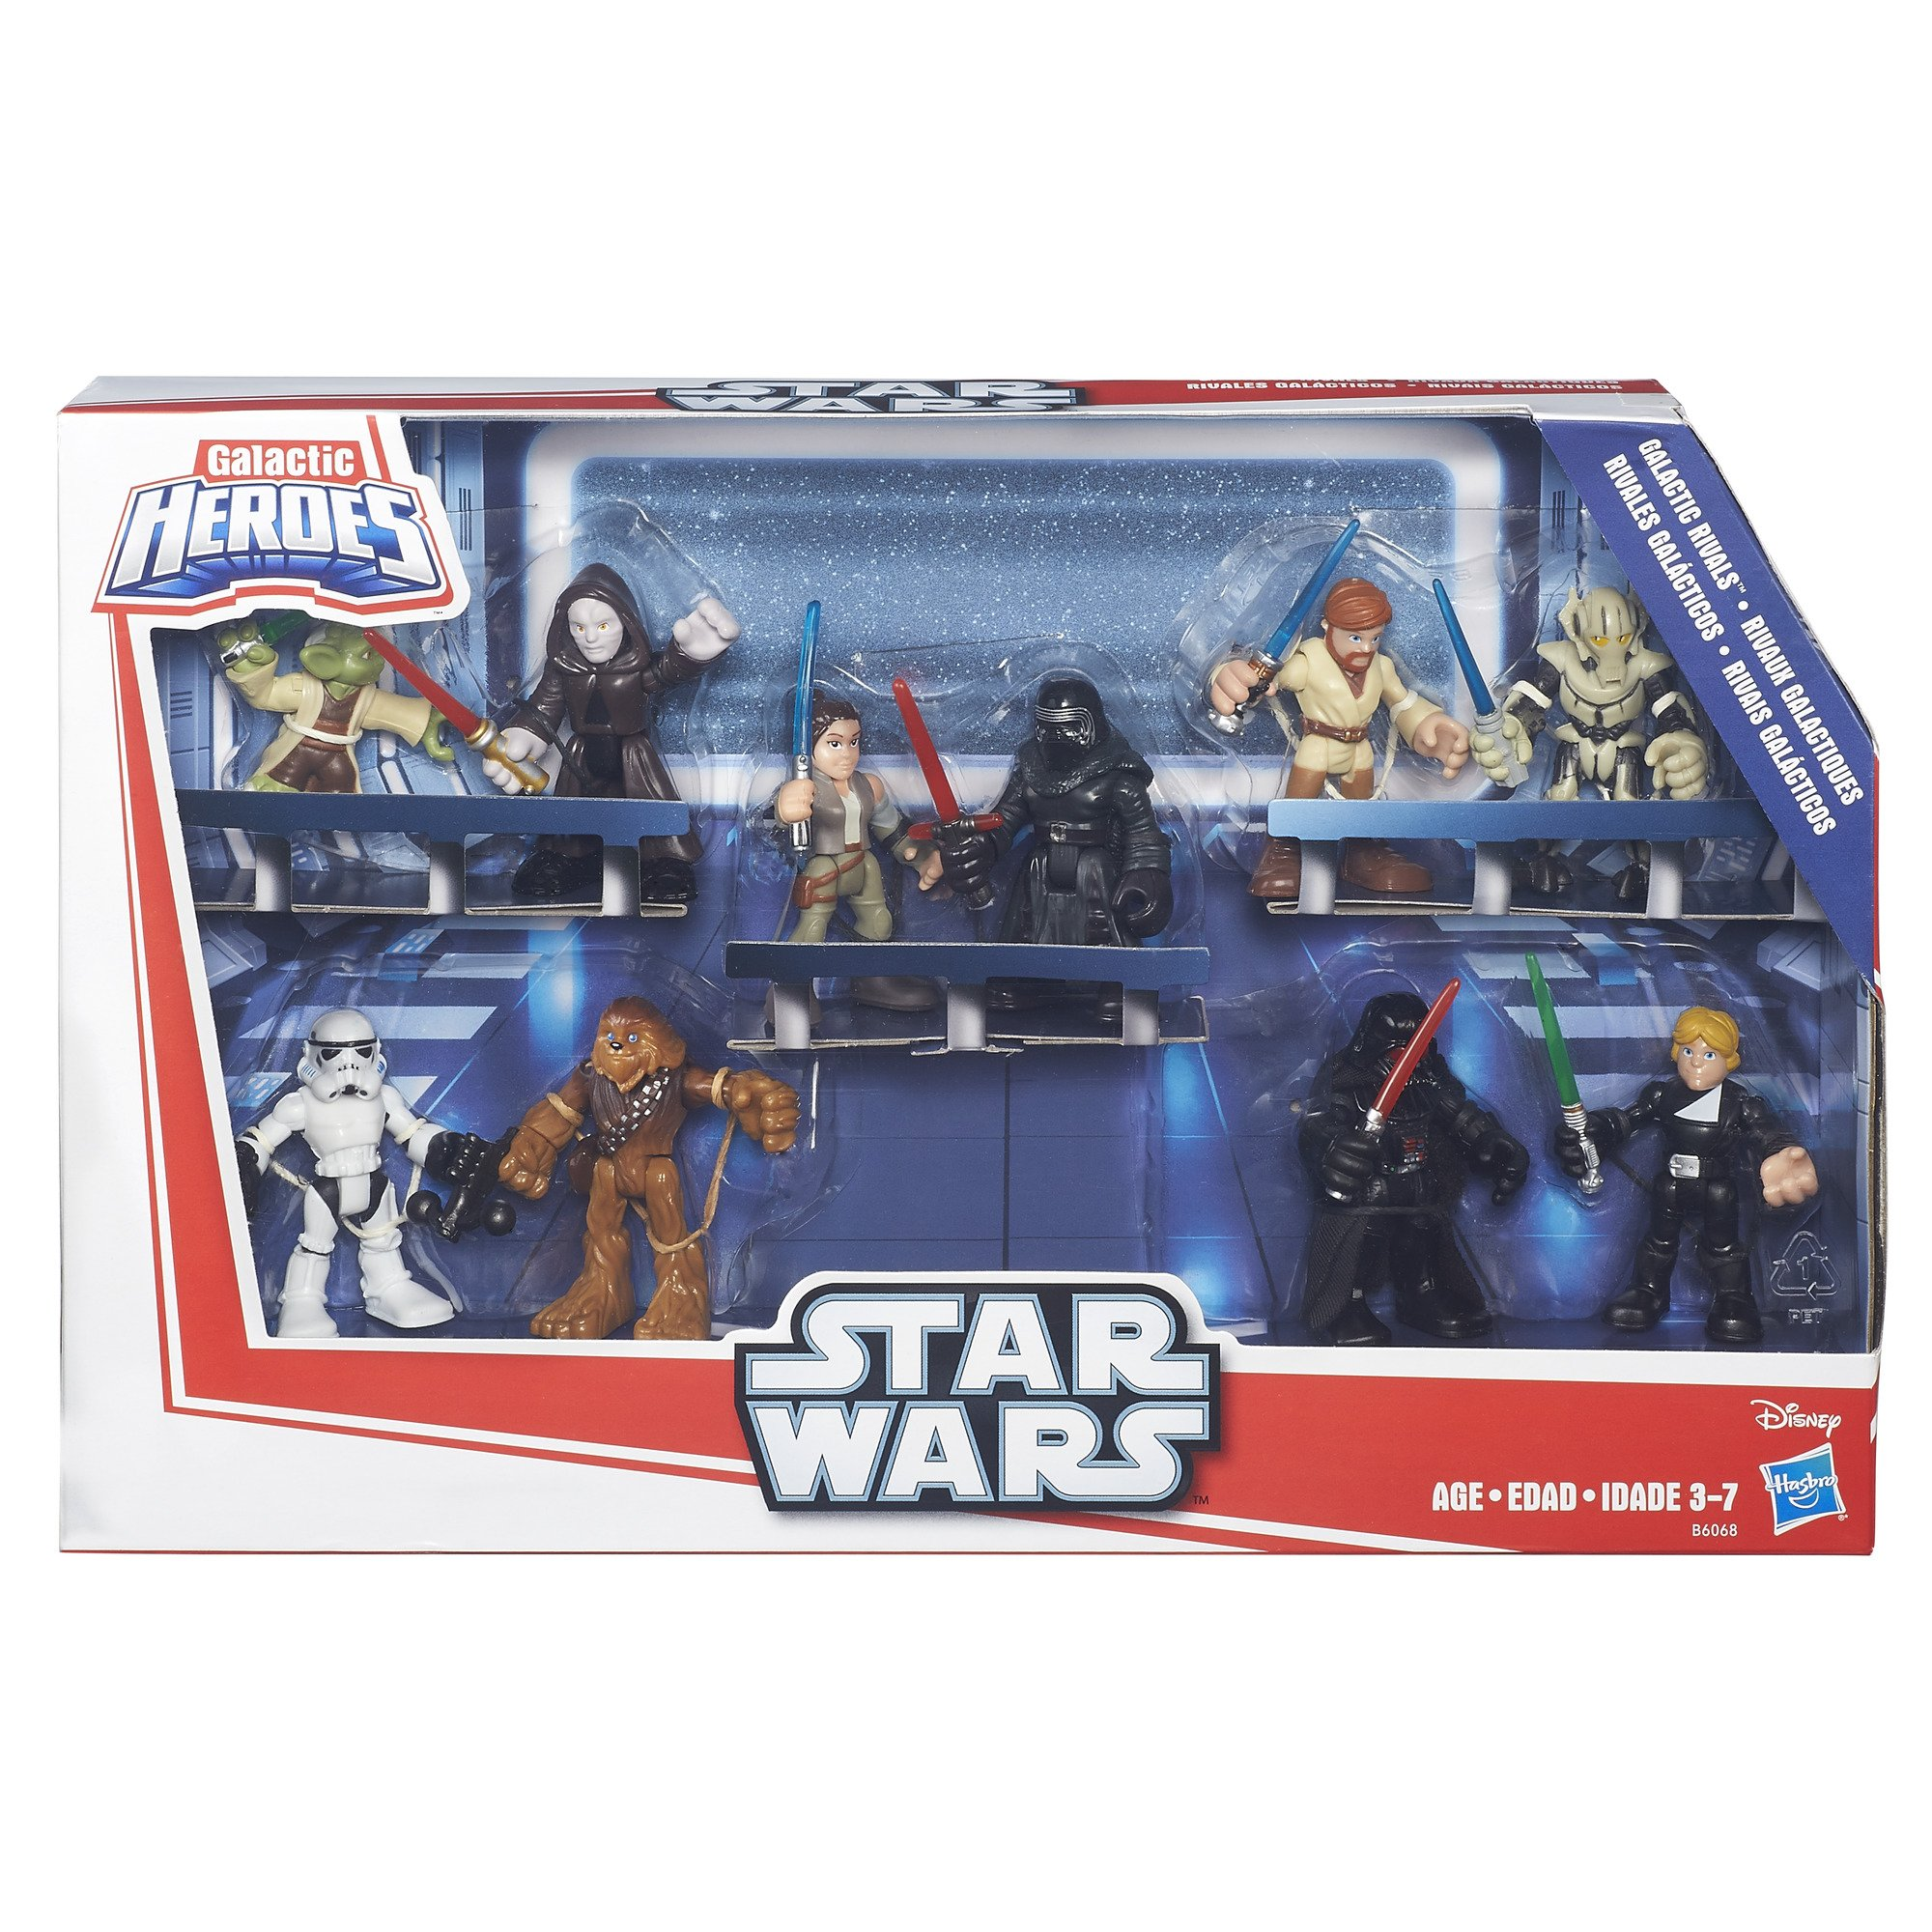 Star Wars Galactic Heroes Galactic Rivals Action Figure by Star Wars (Image #2)